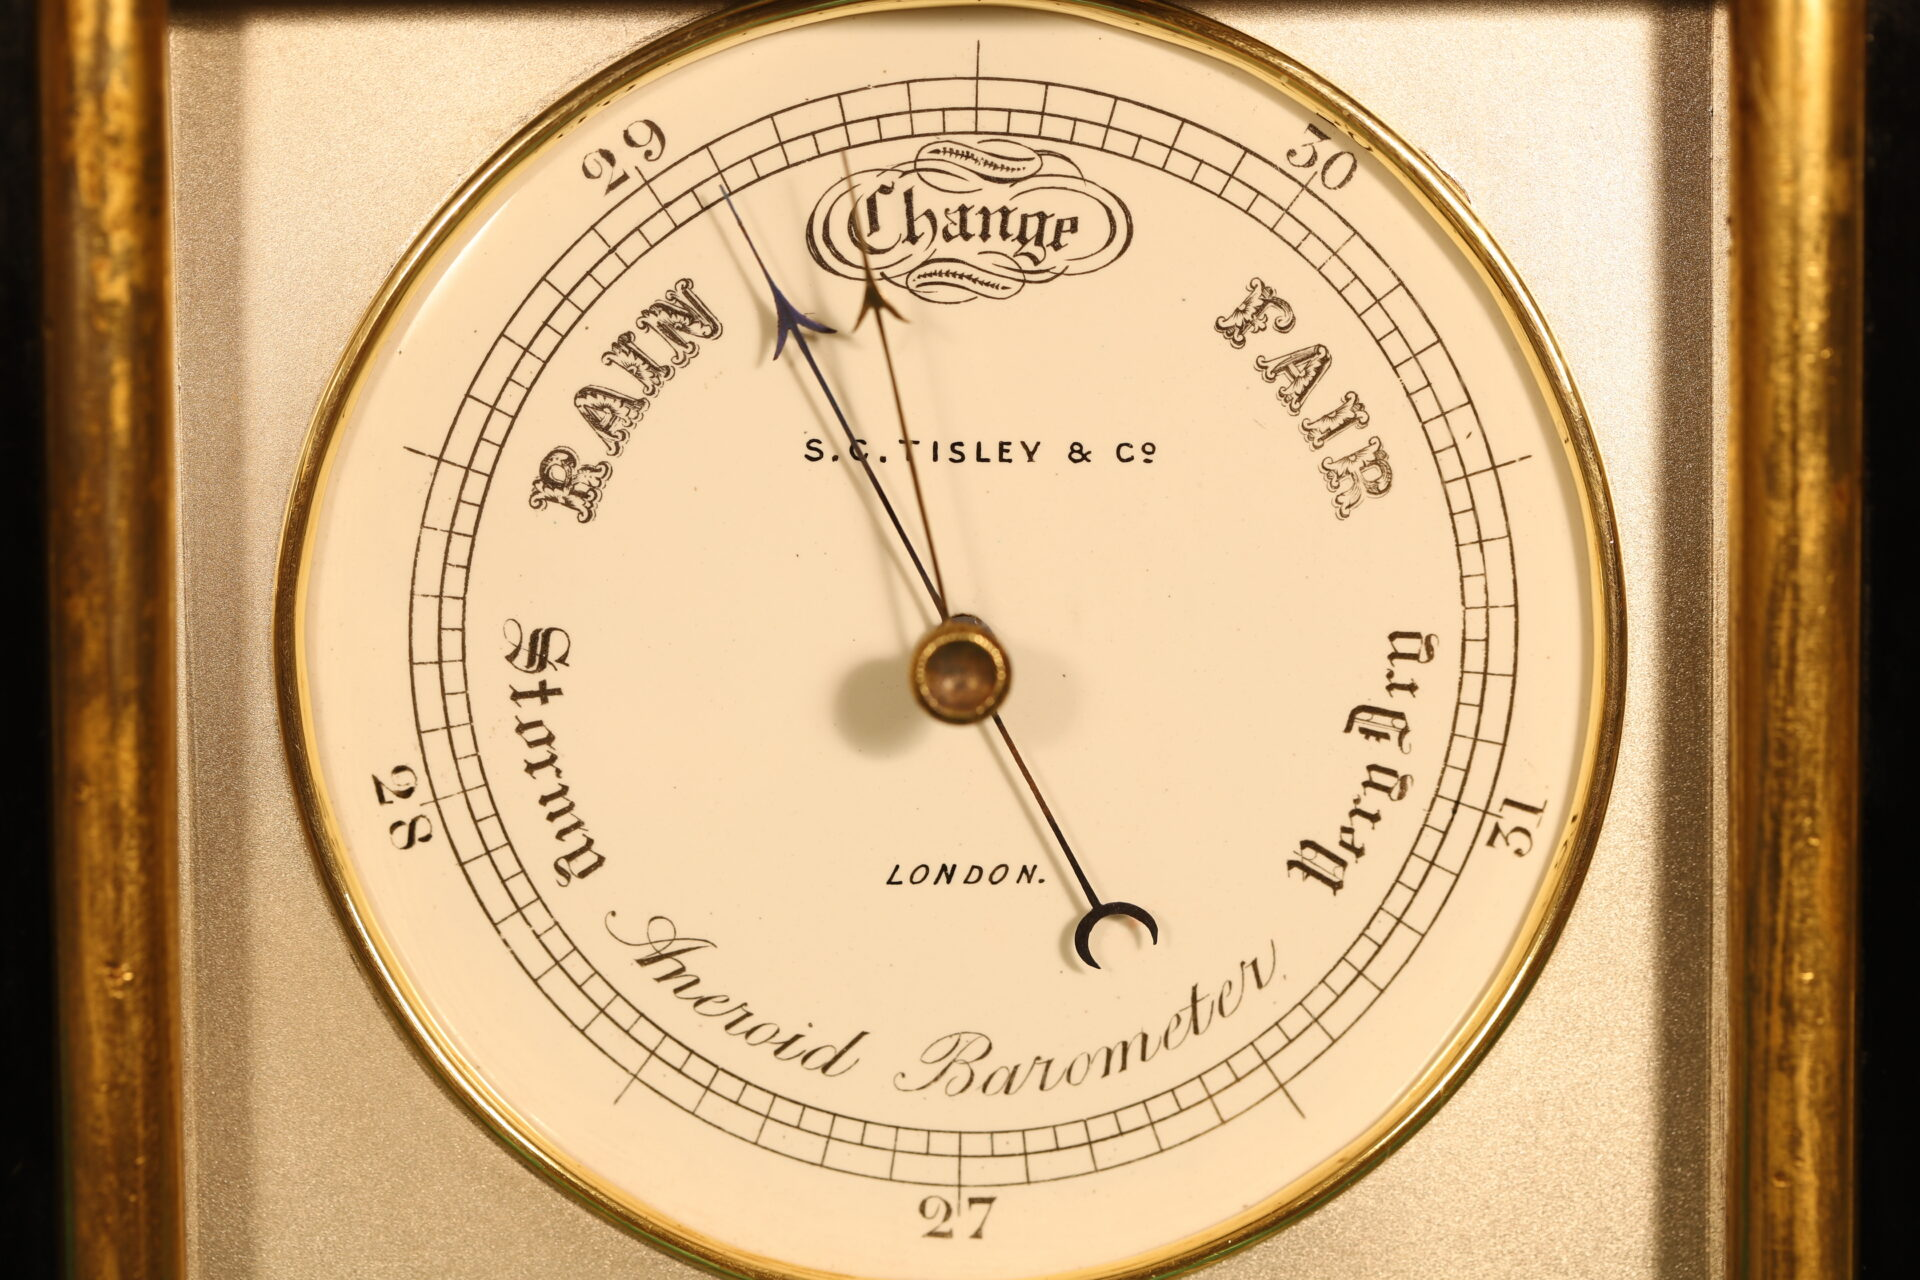 Close up of Ebonised Recording Aneroid Barometer or Barograph c1878 showing dial